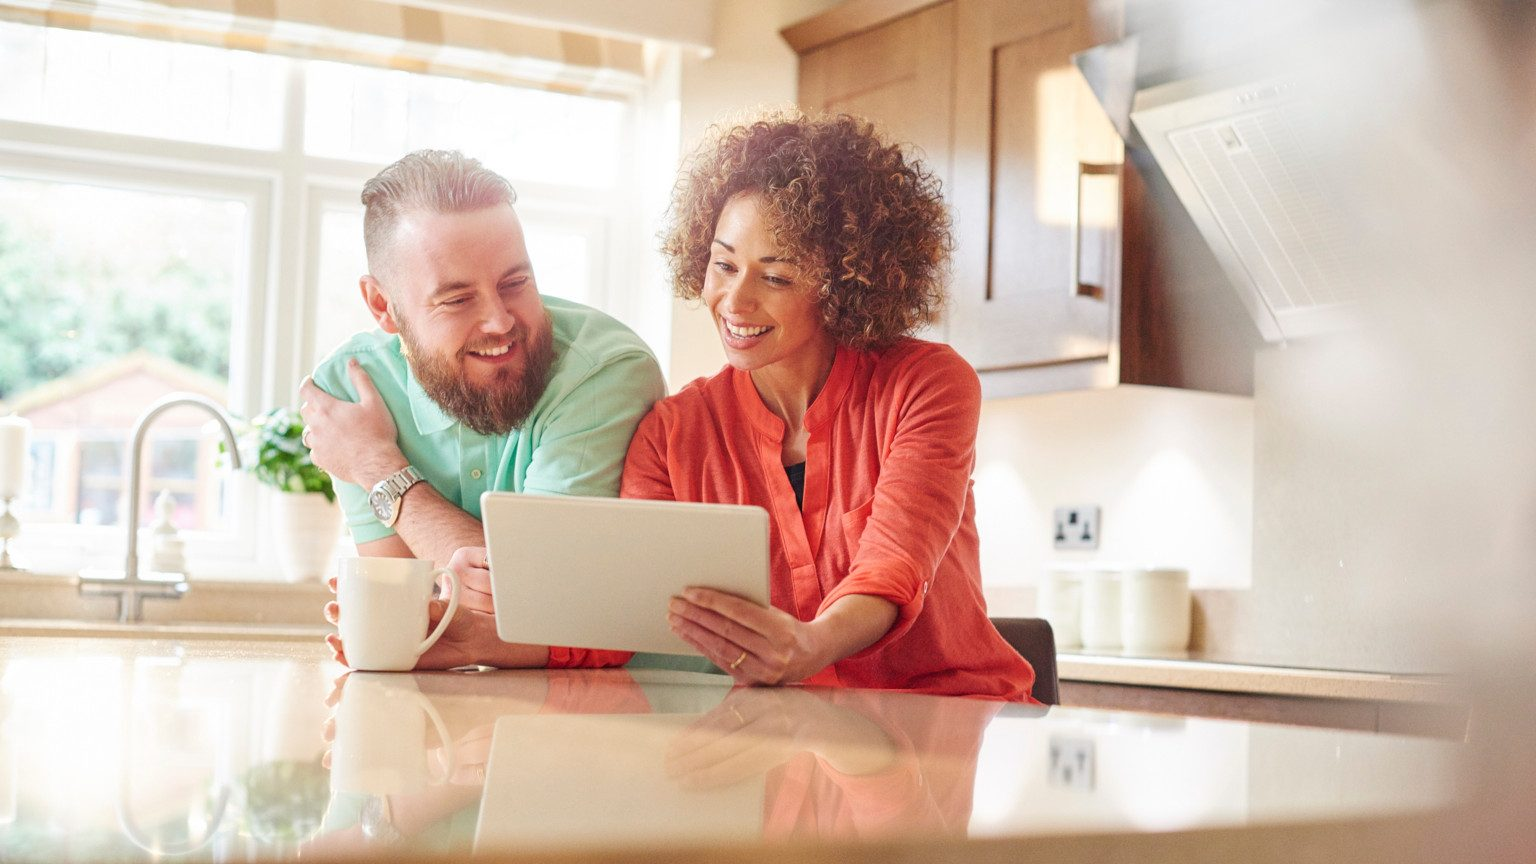 Smiling couple in their kitchen looking at a tablet